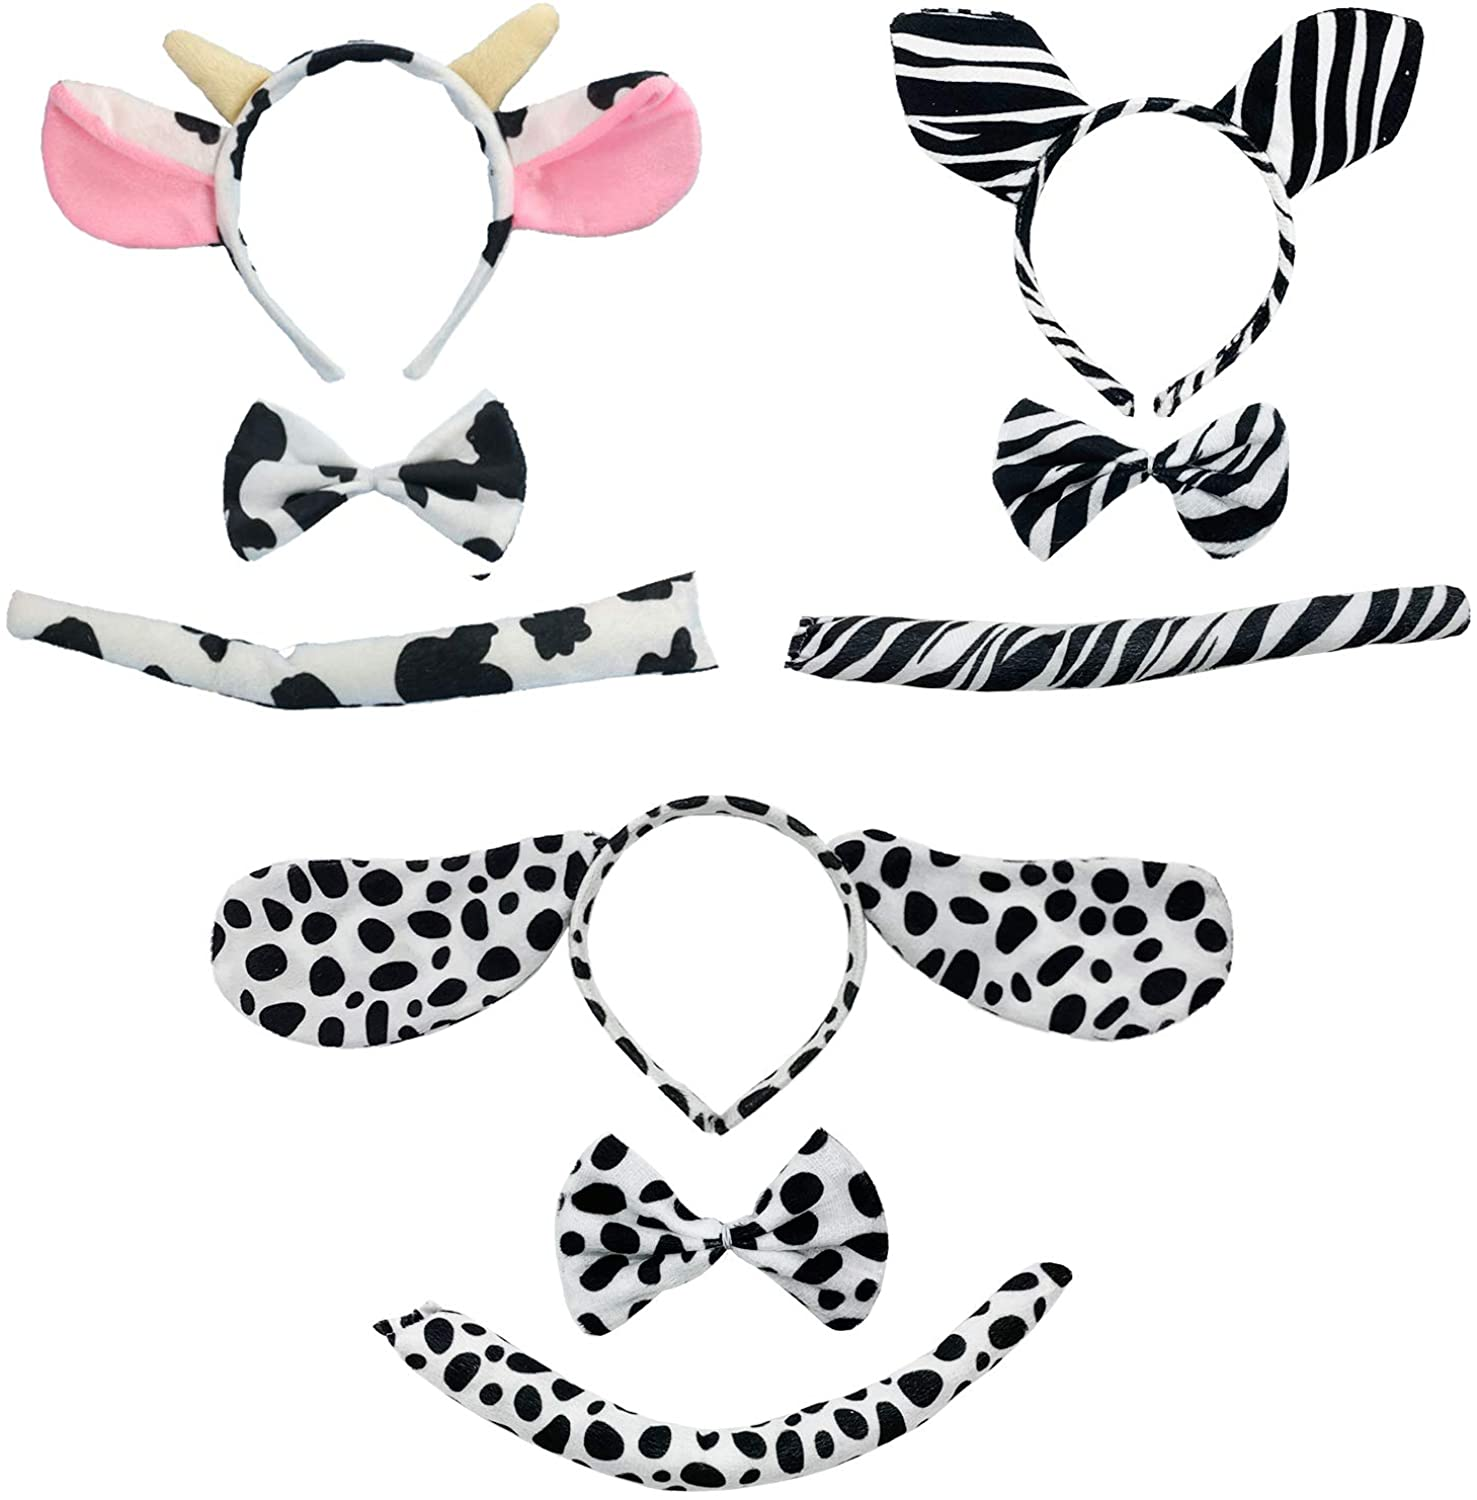 SHANGXING 9 Pack Kids Ears Headband Bow Ties Tail -Cosplay Costume Set Cute Animal Costume Accessories Set Party Halloween Dress Up Outfit